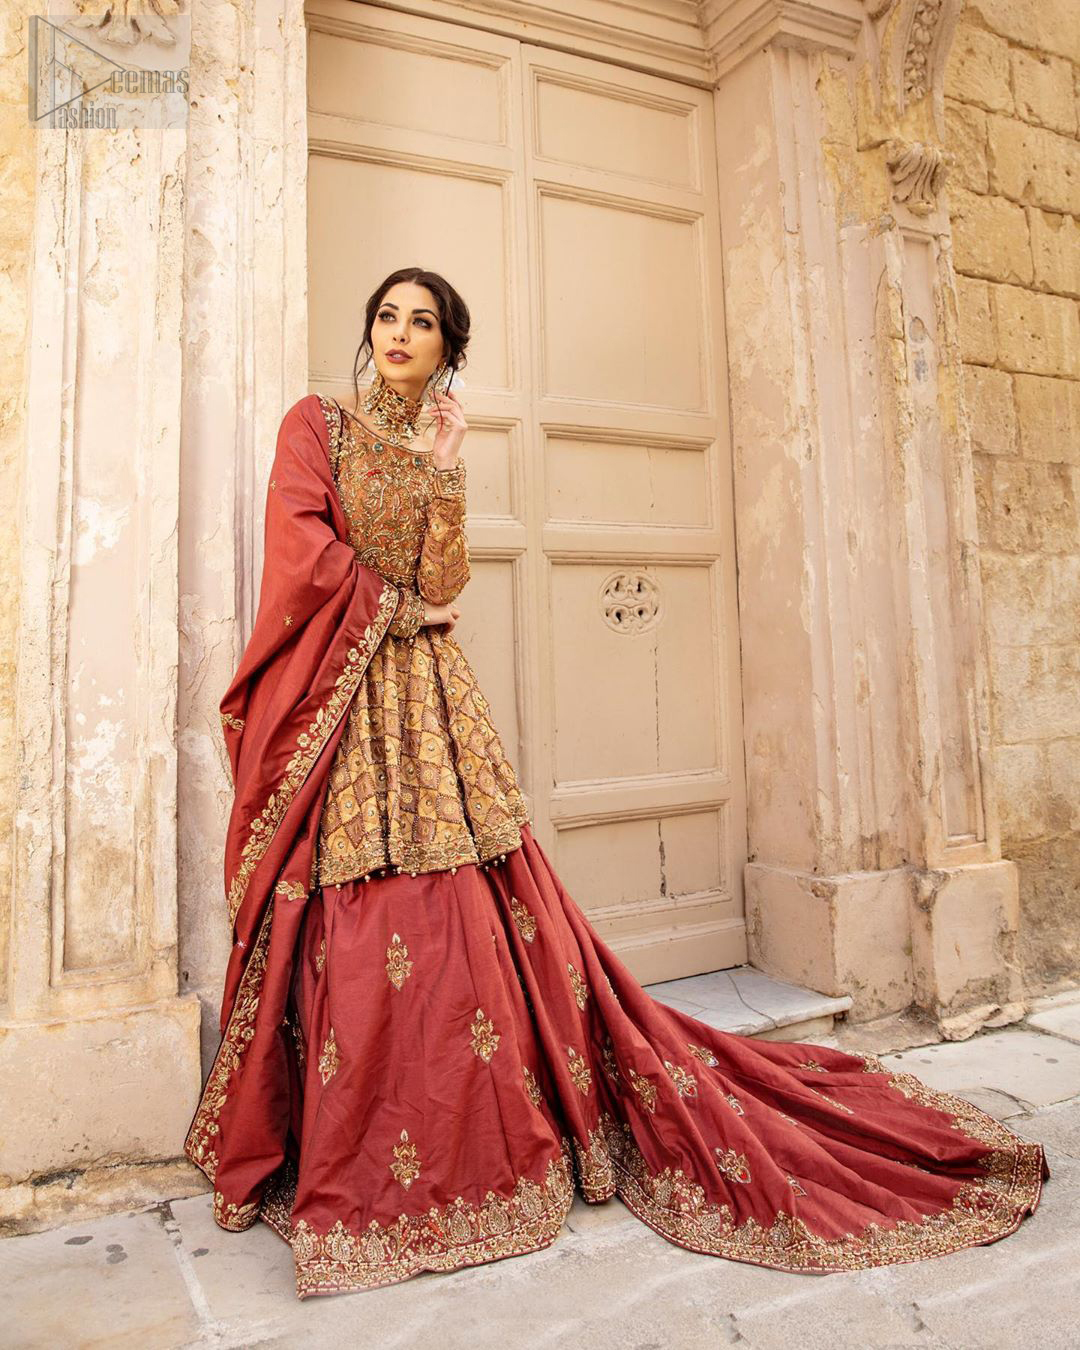 Chic and sophisticated perfectly describe this simply stunning wedding dress. This artisan piece includes intricate hand embellishment. This technique gives our garments a unique look, and helps to sustain a traditional craft carried out by skilled artisans across Asia. The short frock is fully embellished with zardozi work in the shades of golden and silver on tea rose canvas. Finished with dangling pearls on hemline. Compliment the look with coral back train lehenga exaggerated with embellished bottom and sprinkled floral bunches. The coral raw silk dupatta is emphasized with intricate embroidered borders.